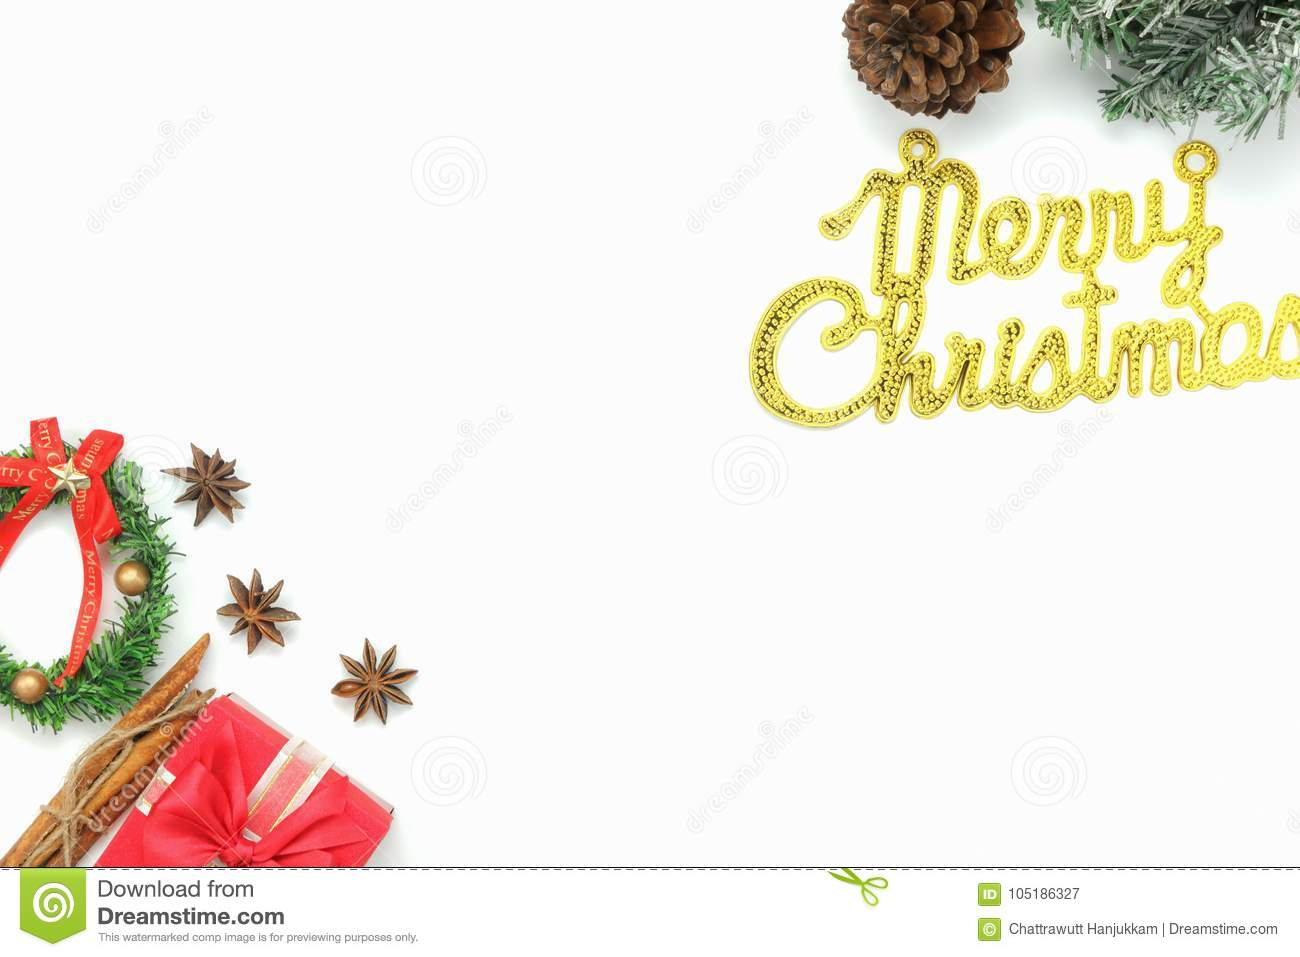 above view aerial image of ornaments decorations merry christmas happy new year conceptessential accessories on white background